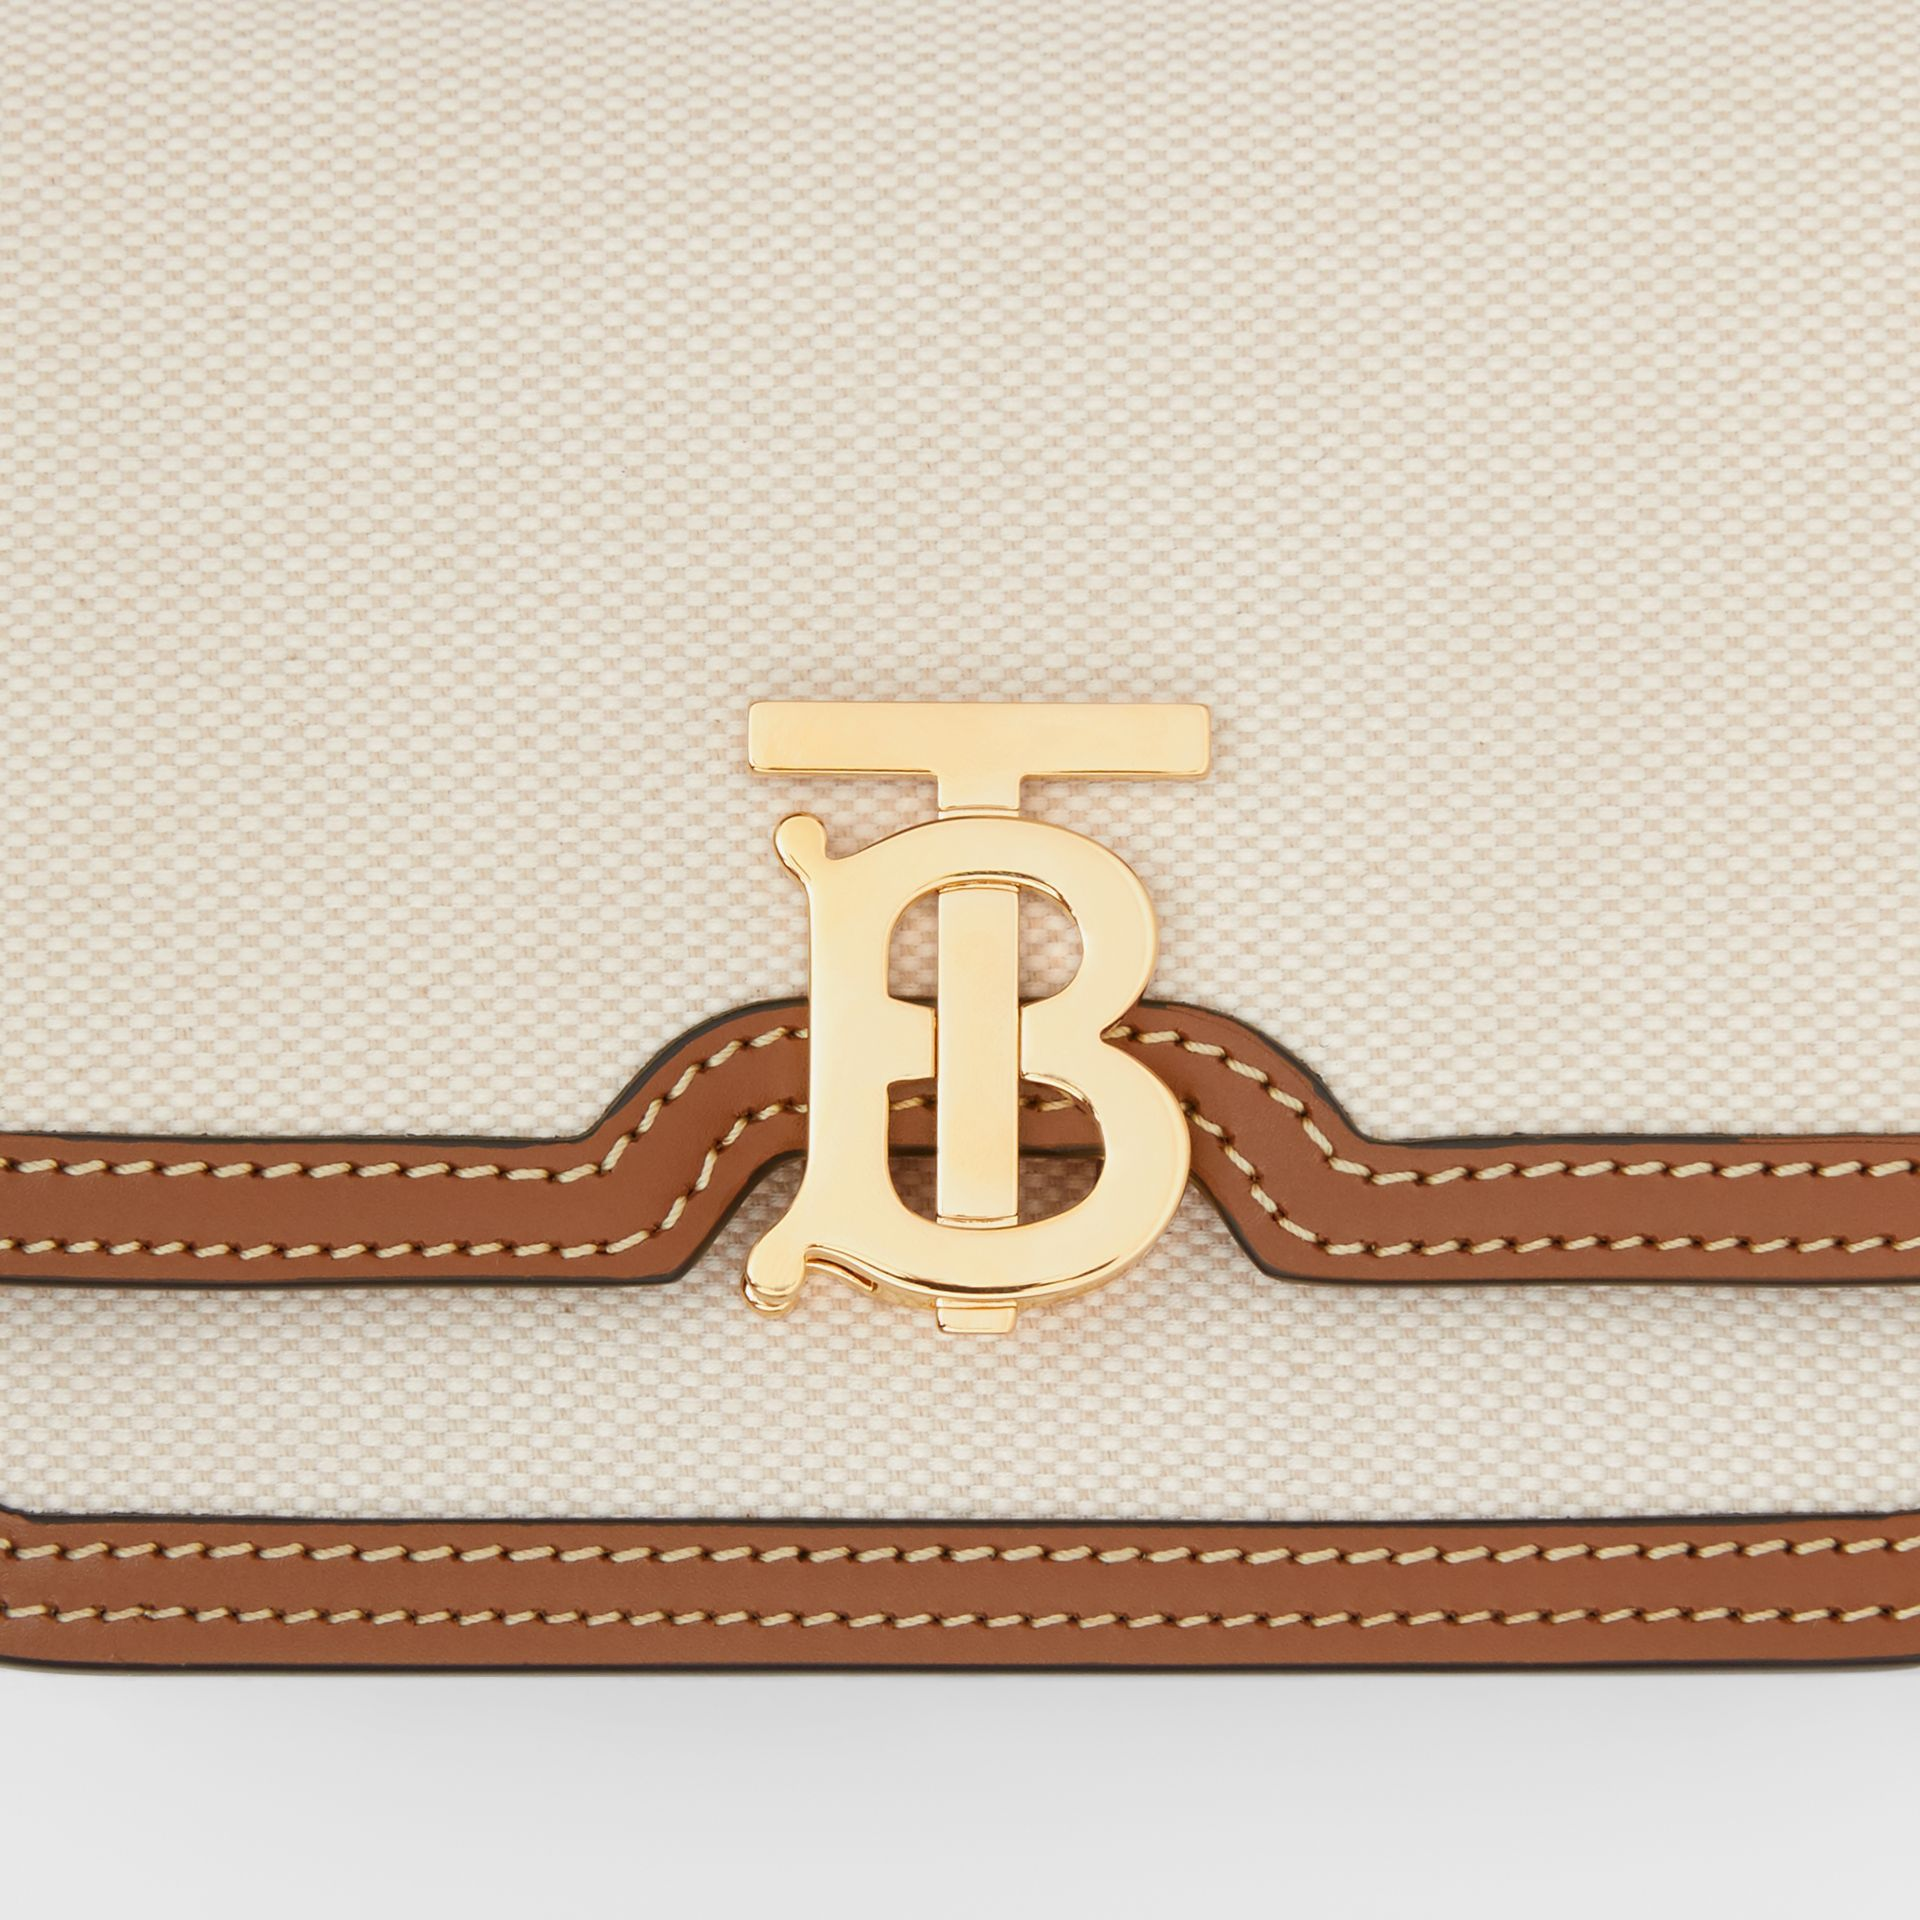 Mini Two-tone Canvas and Leather TB Bag in Natural/malt Brown - Women | Burberry Hong Kong S.A.R. - gallery image 1